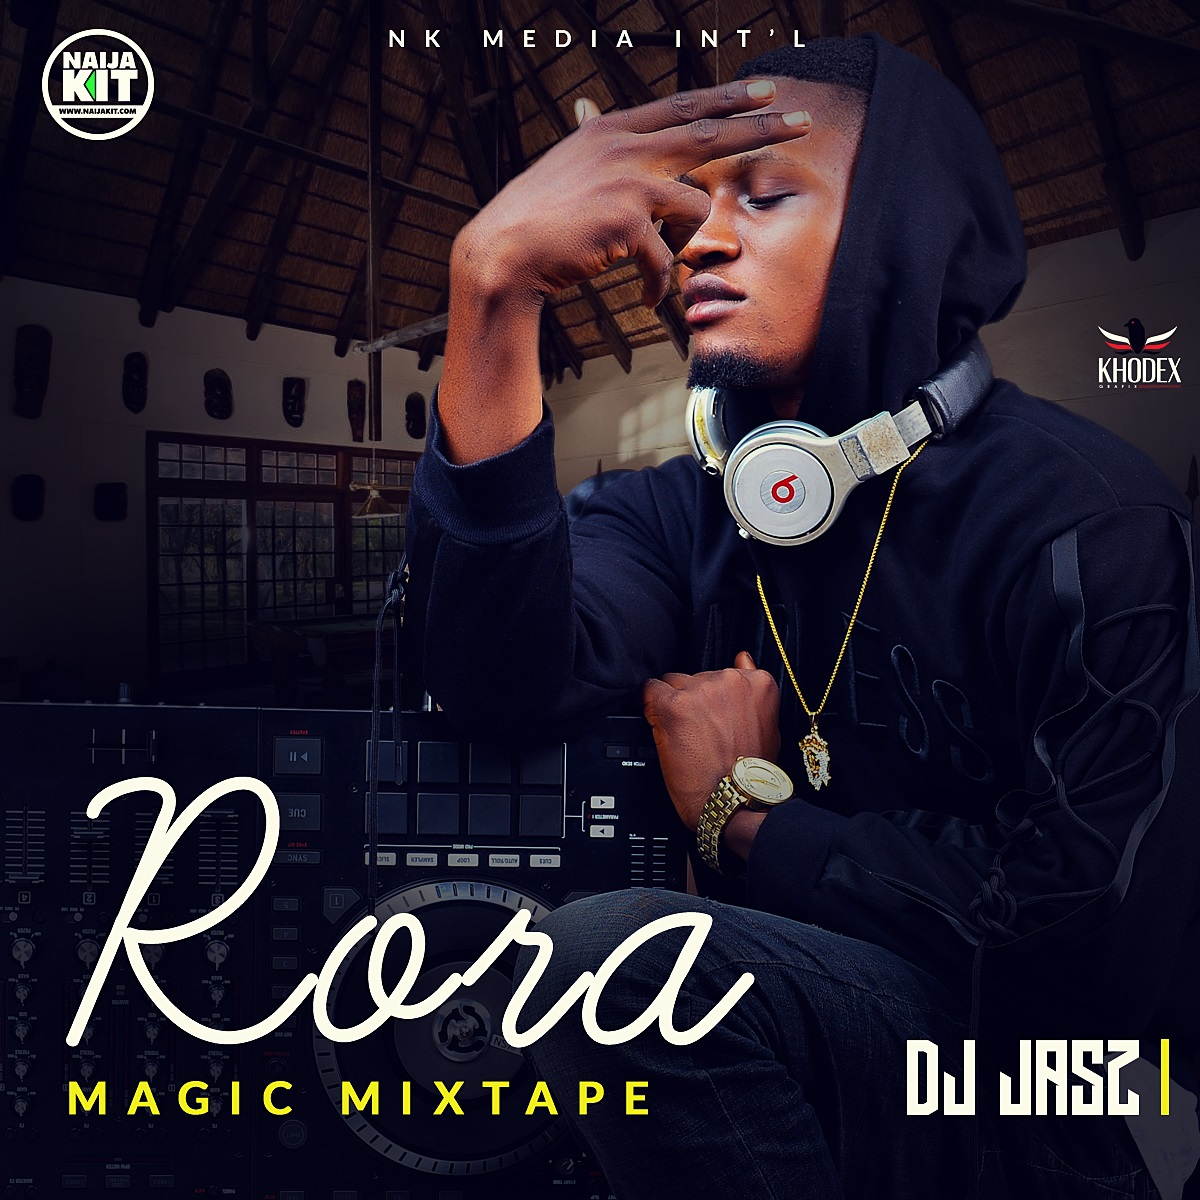 DJ Jasz - Rora Magic Mixtape (2019)